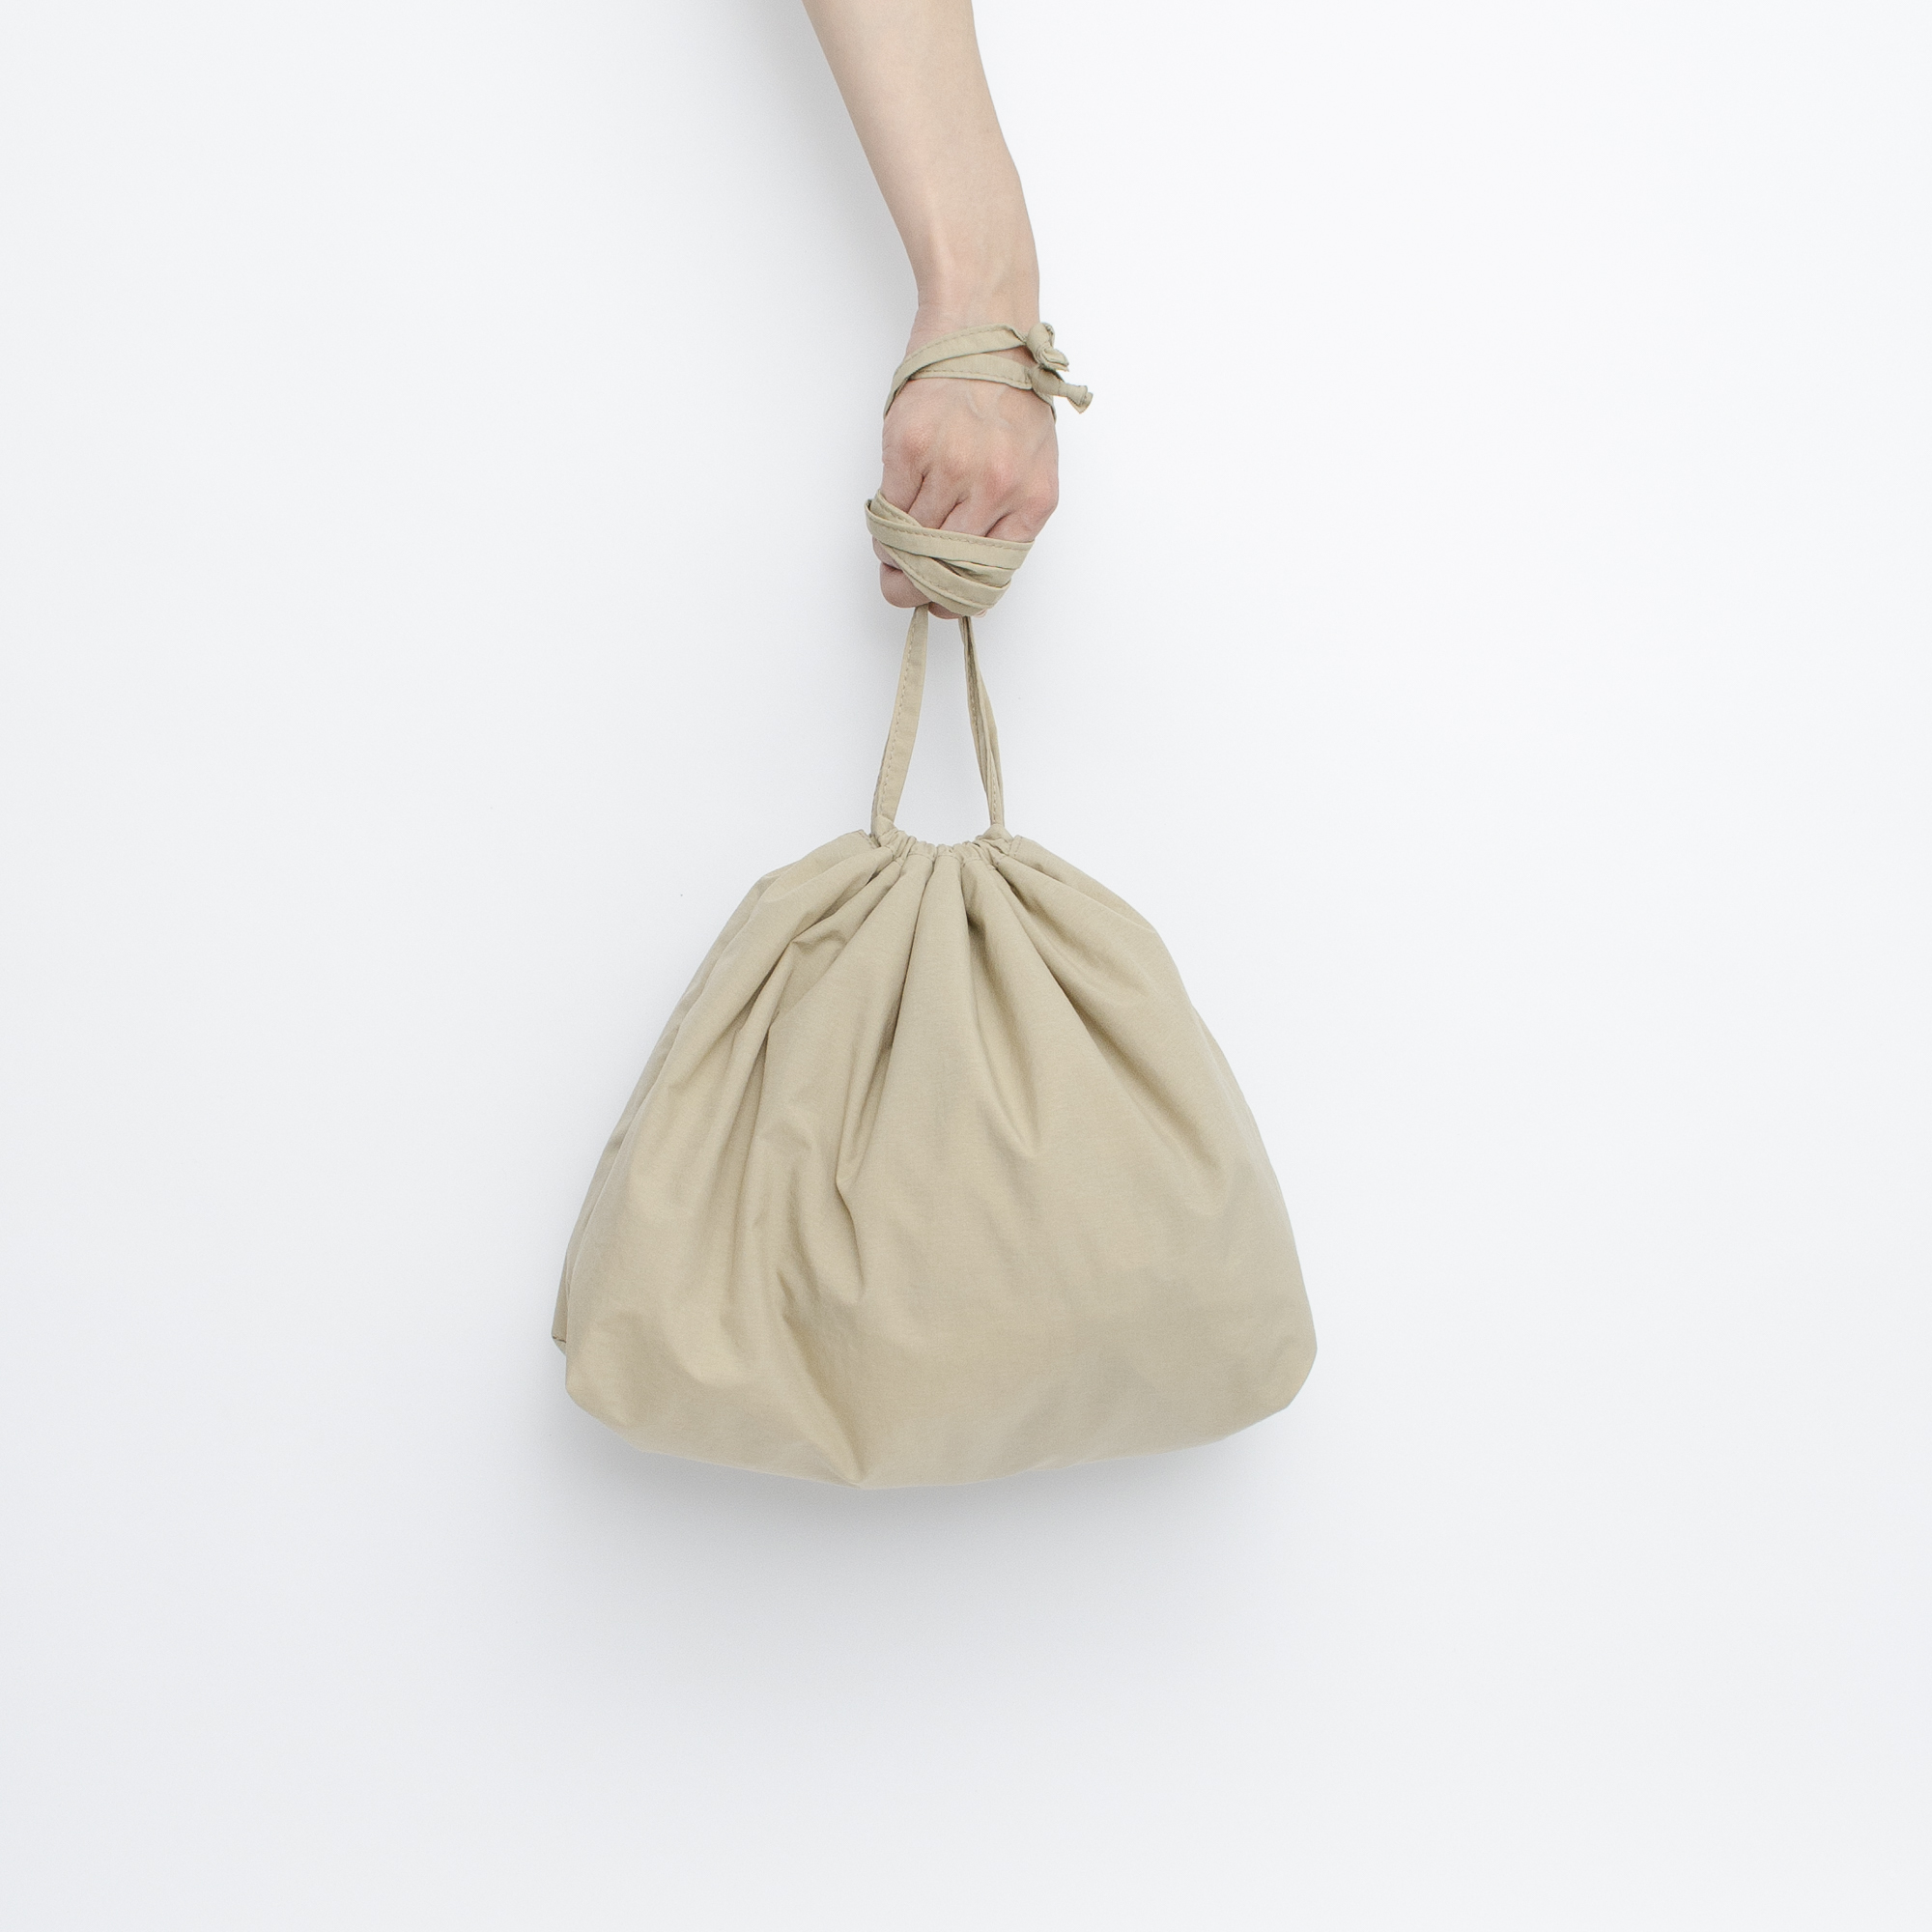 KaILI TOY NOT COMPACT ECOBAG